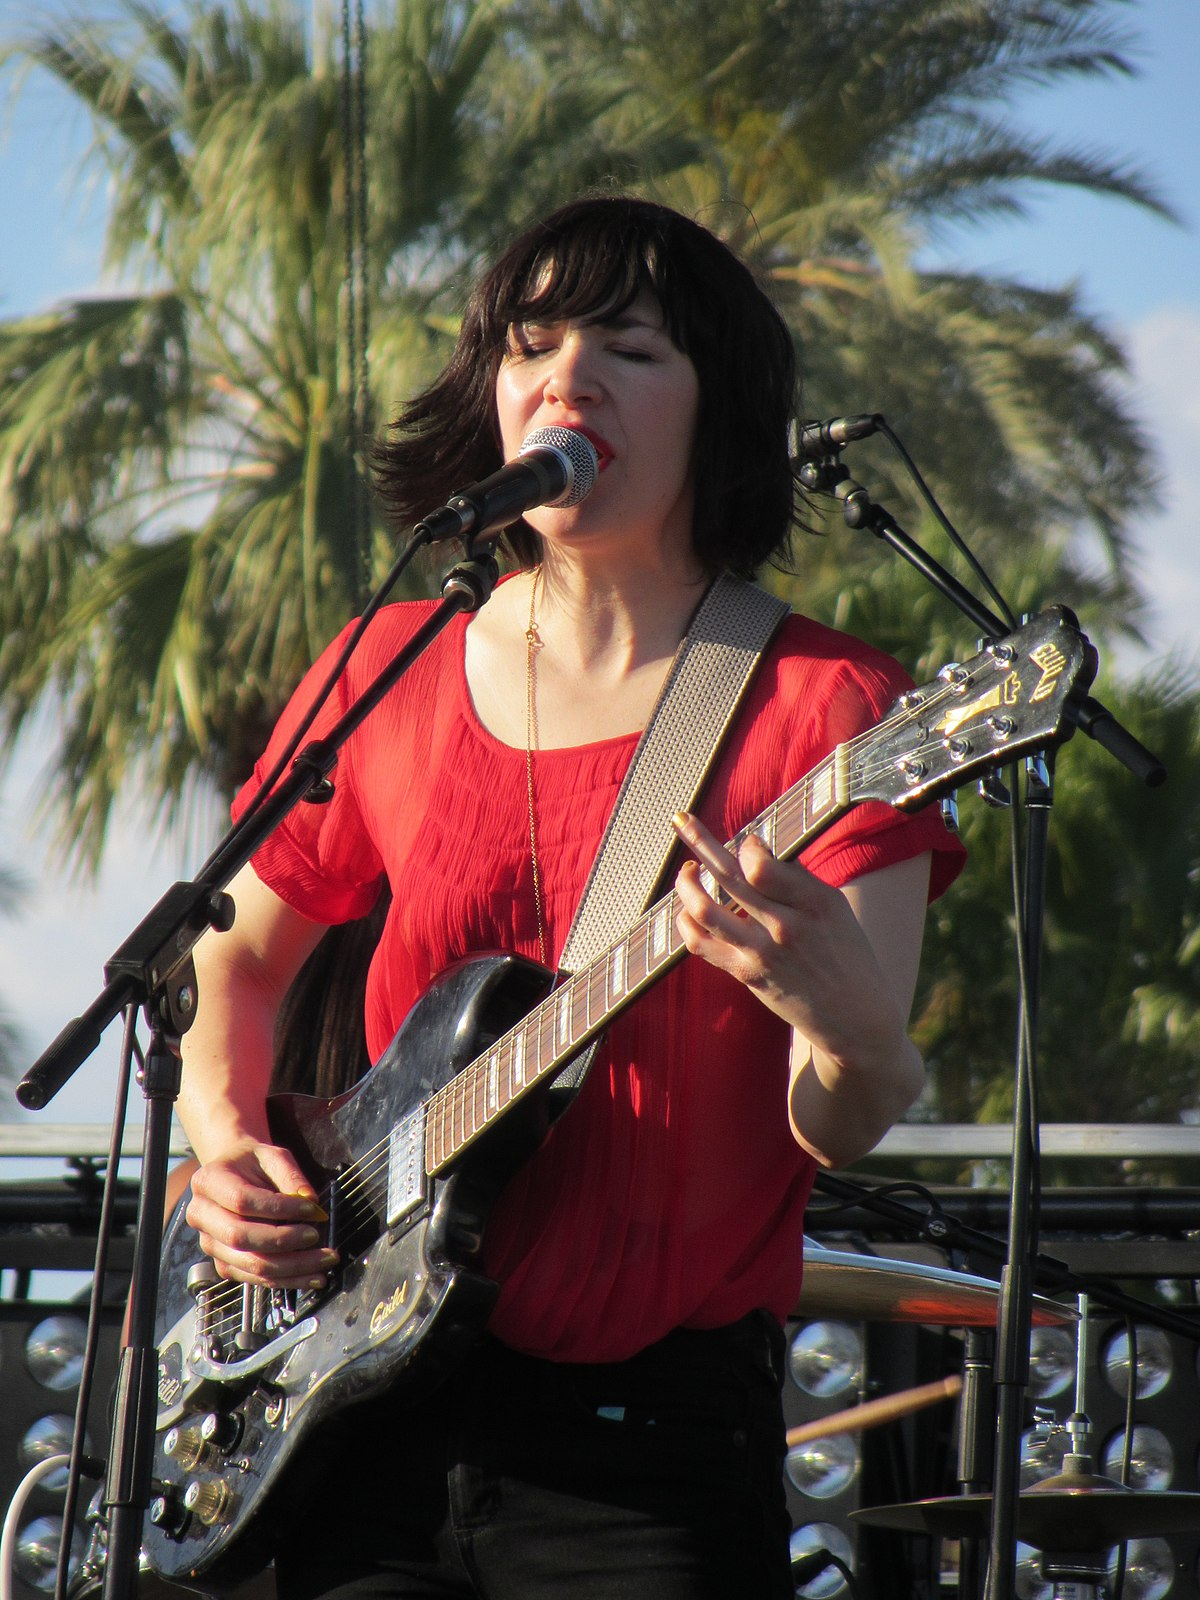 Carrie Brownstein Wild Flag